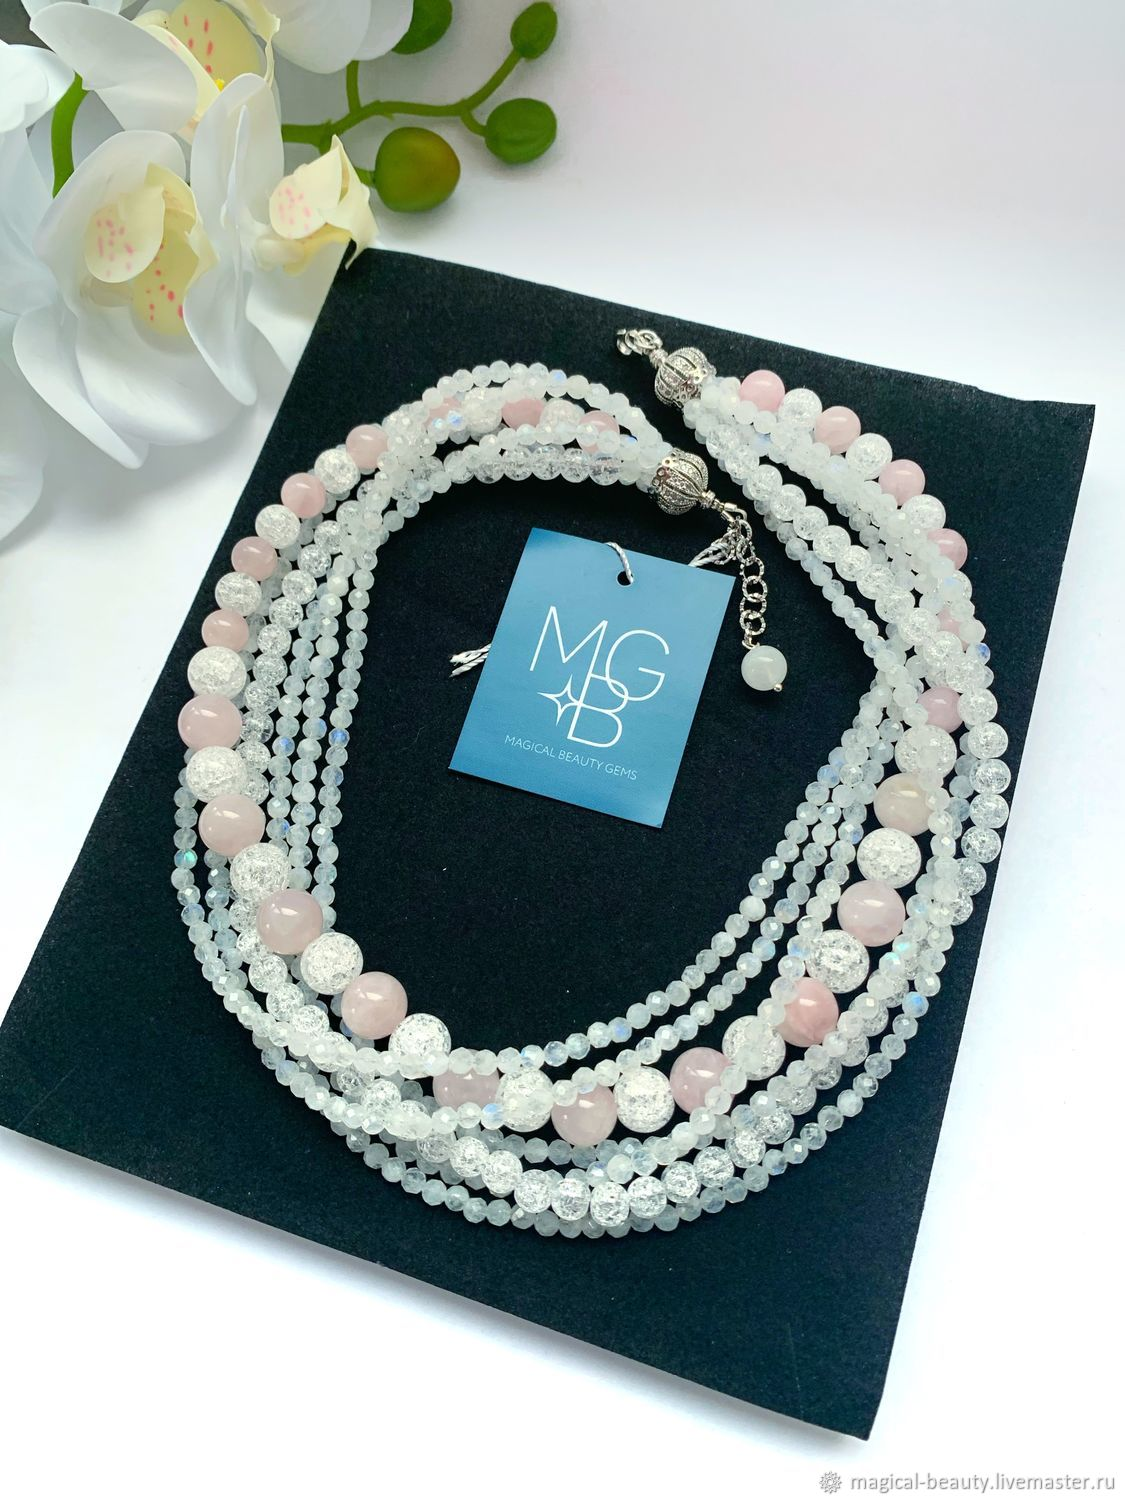 Necklace with adular, kunzite and krakle quartz, Necklace, Moscow,  Фото №1